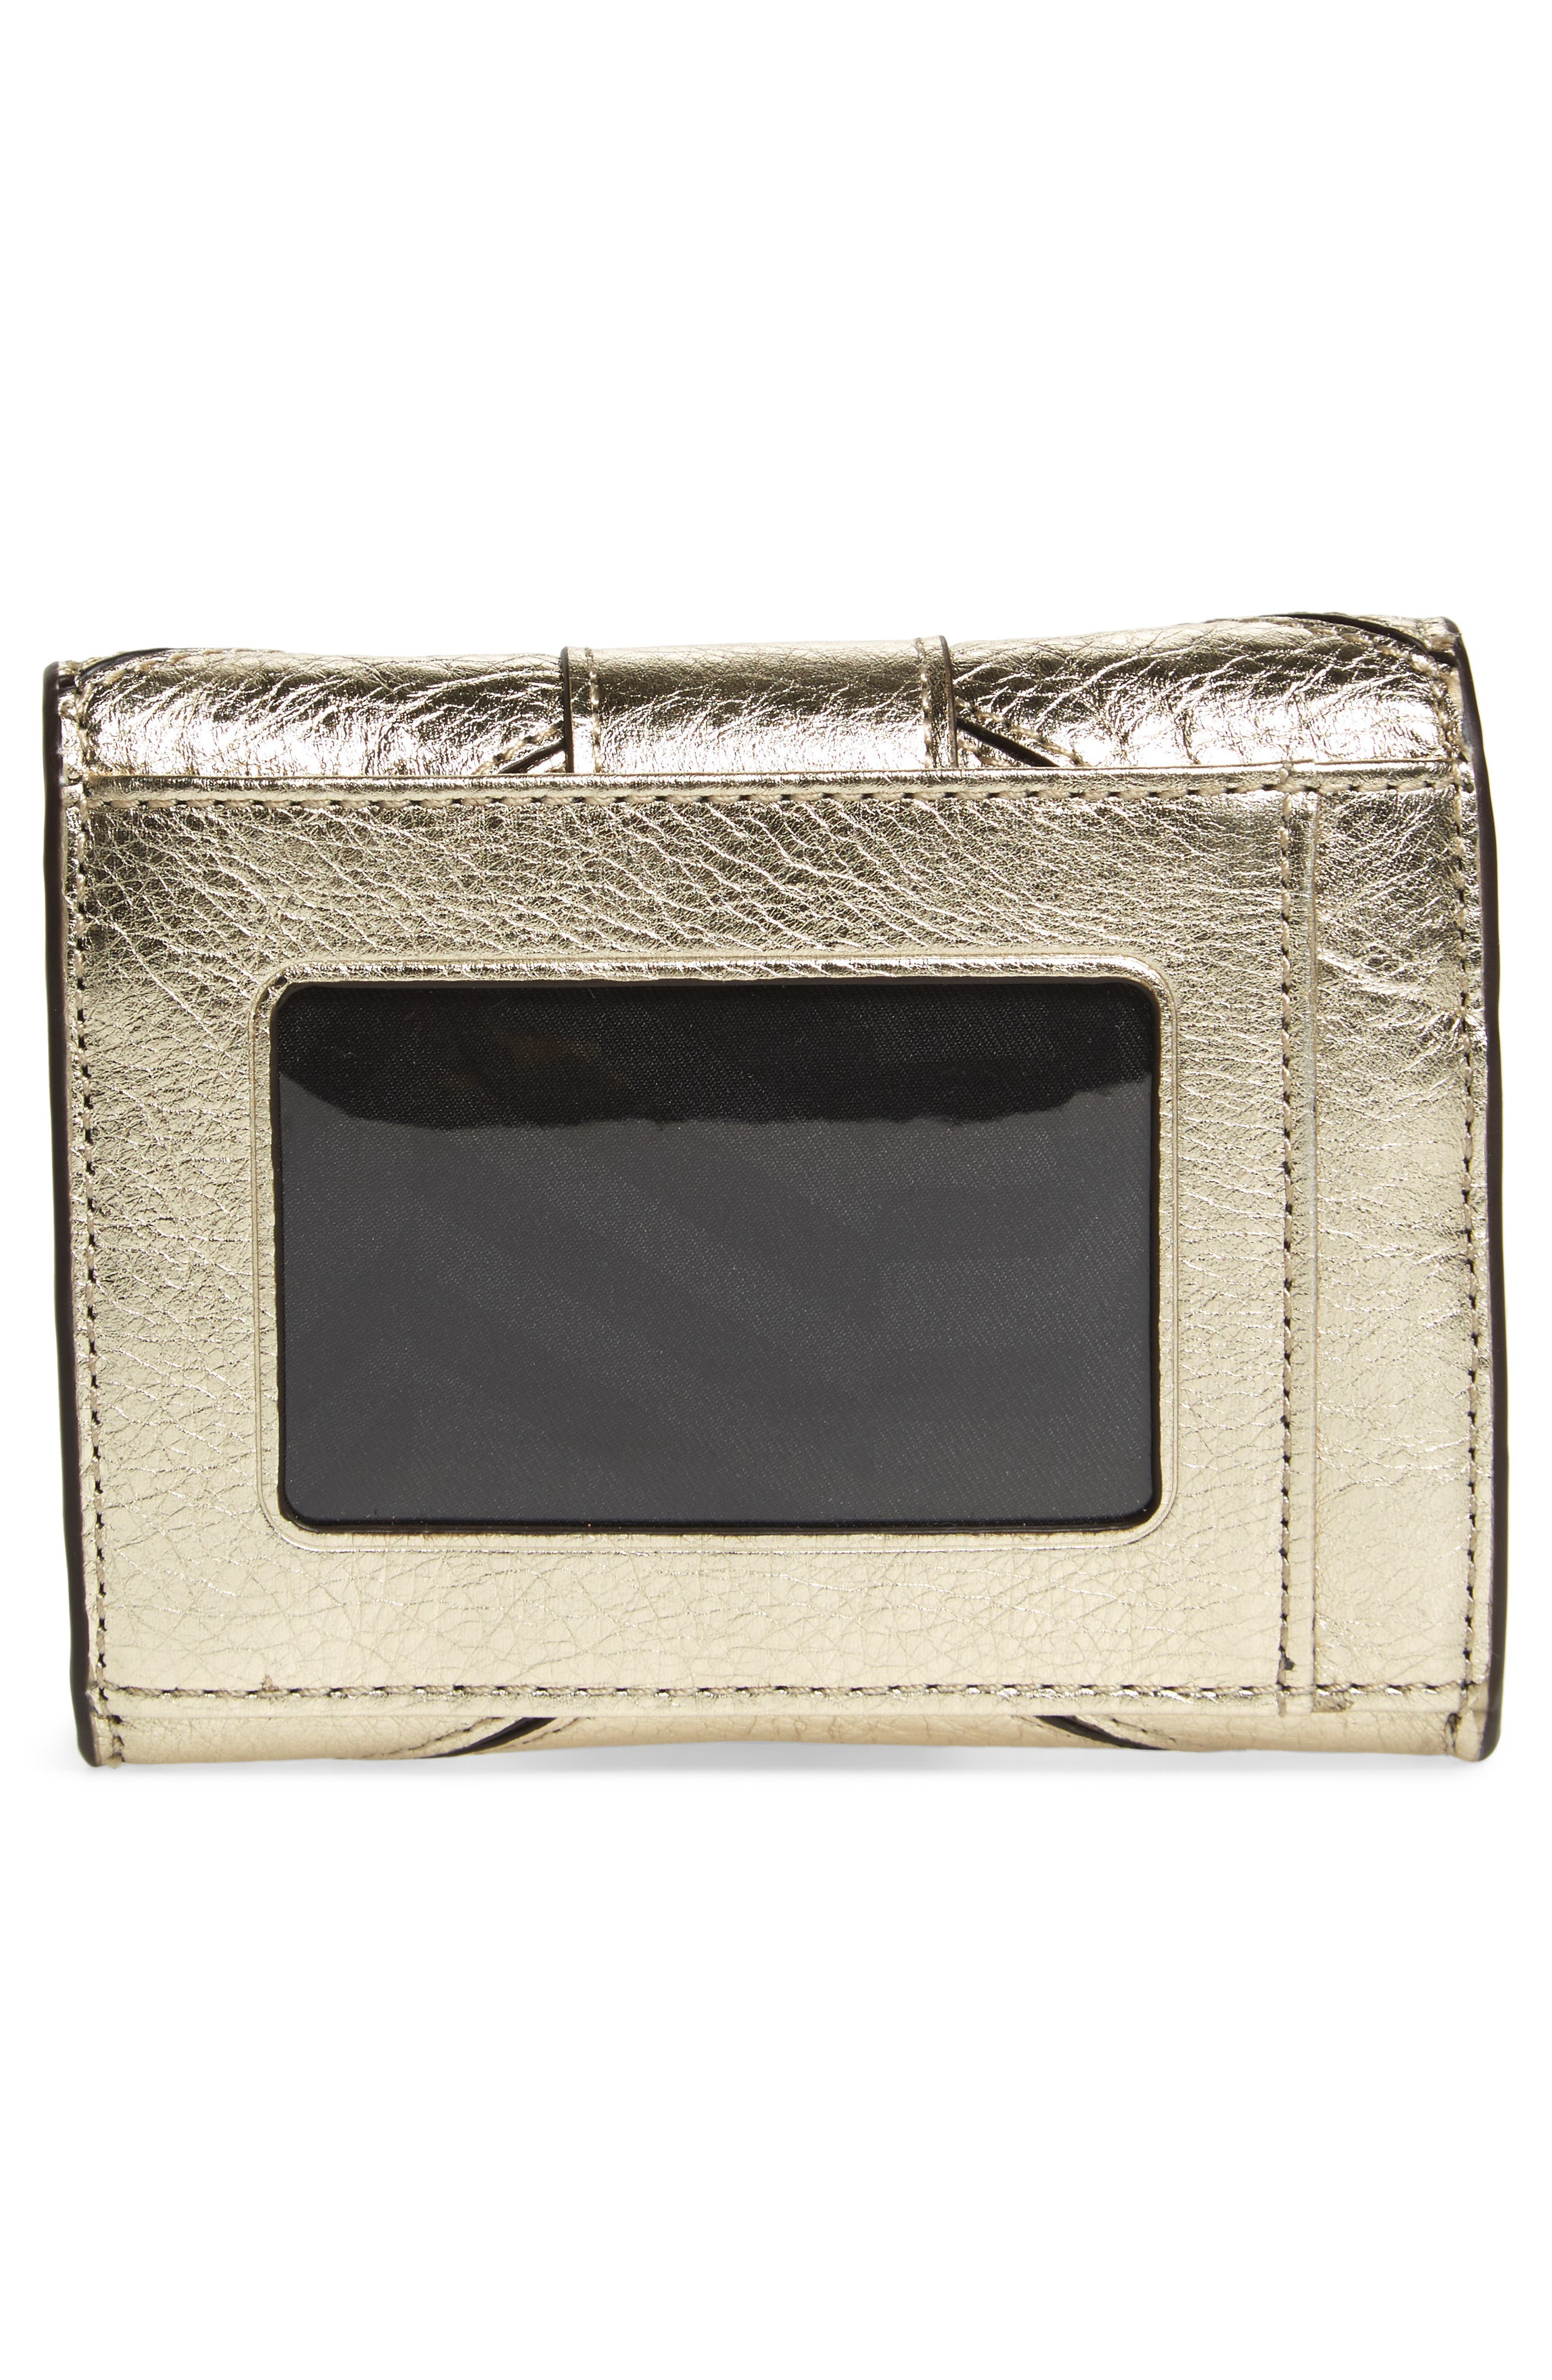 Love Lock Metallic Leather Wallet,                             Alternate thumbnail 4, color,